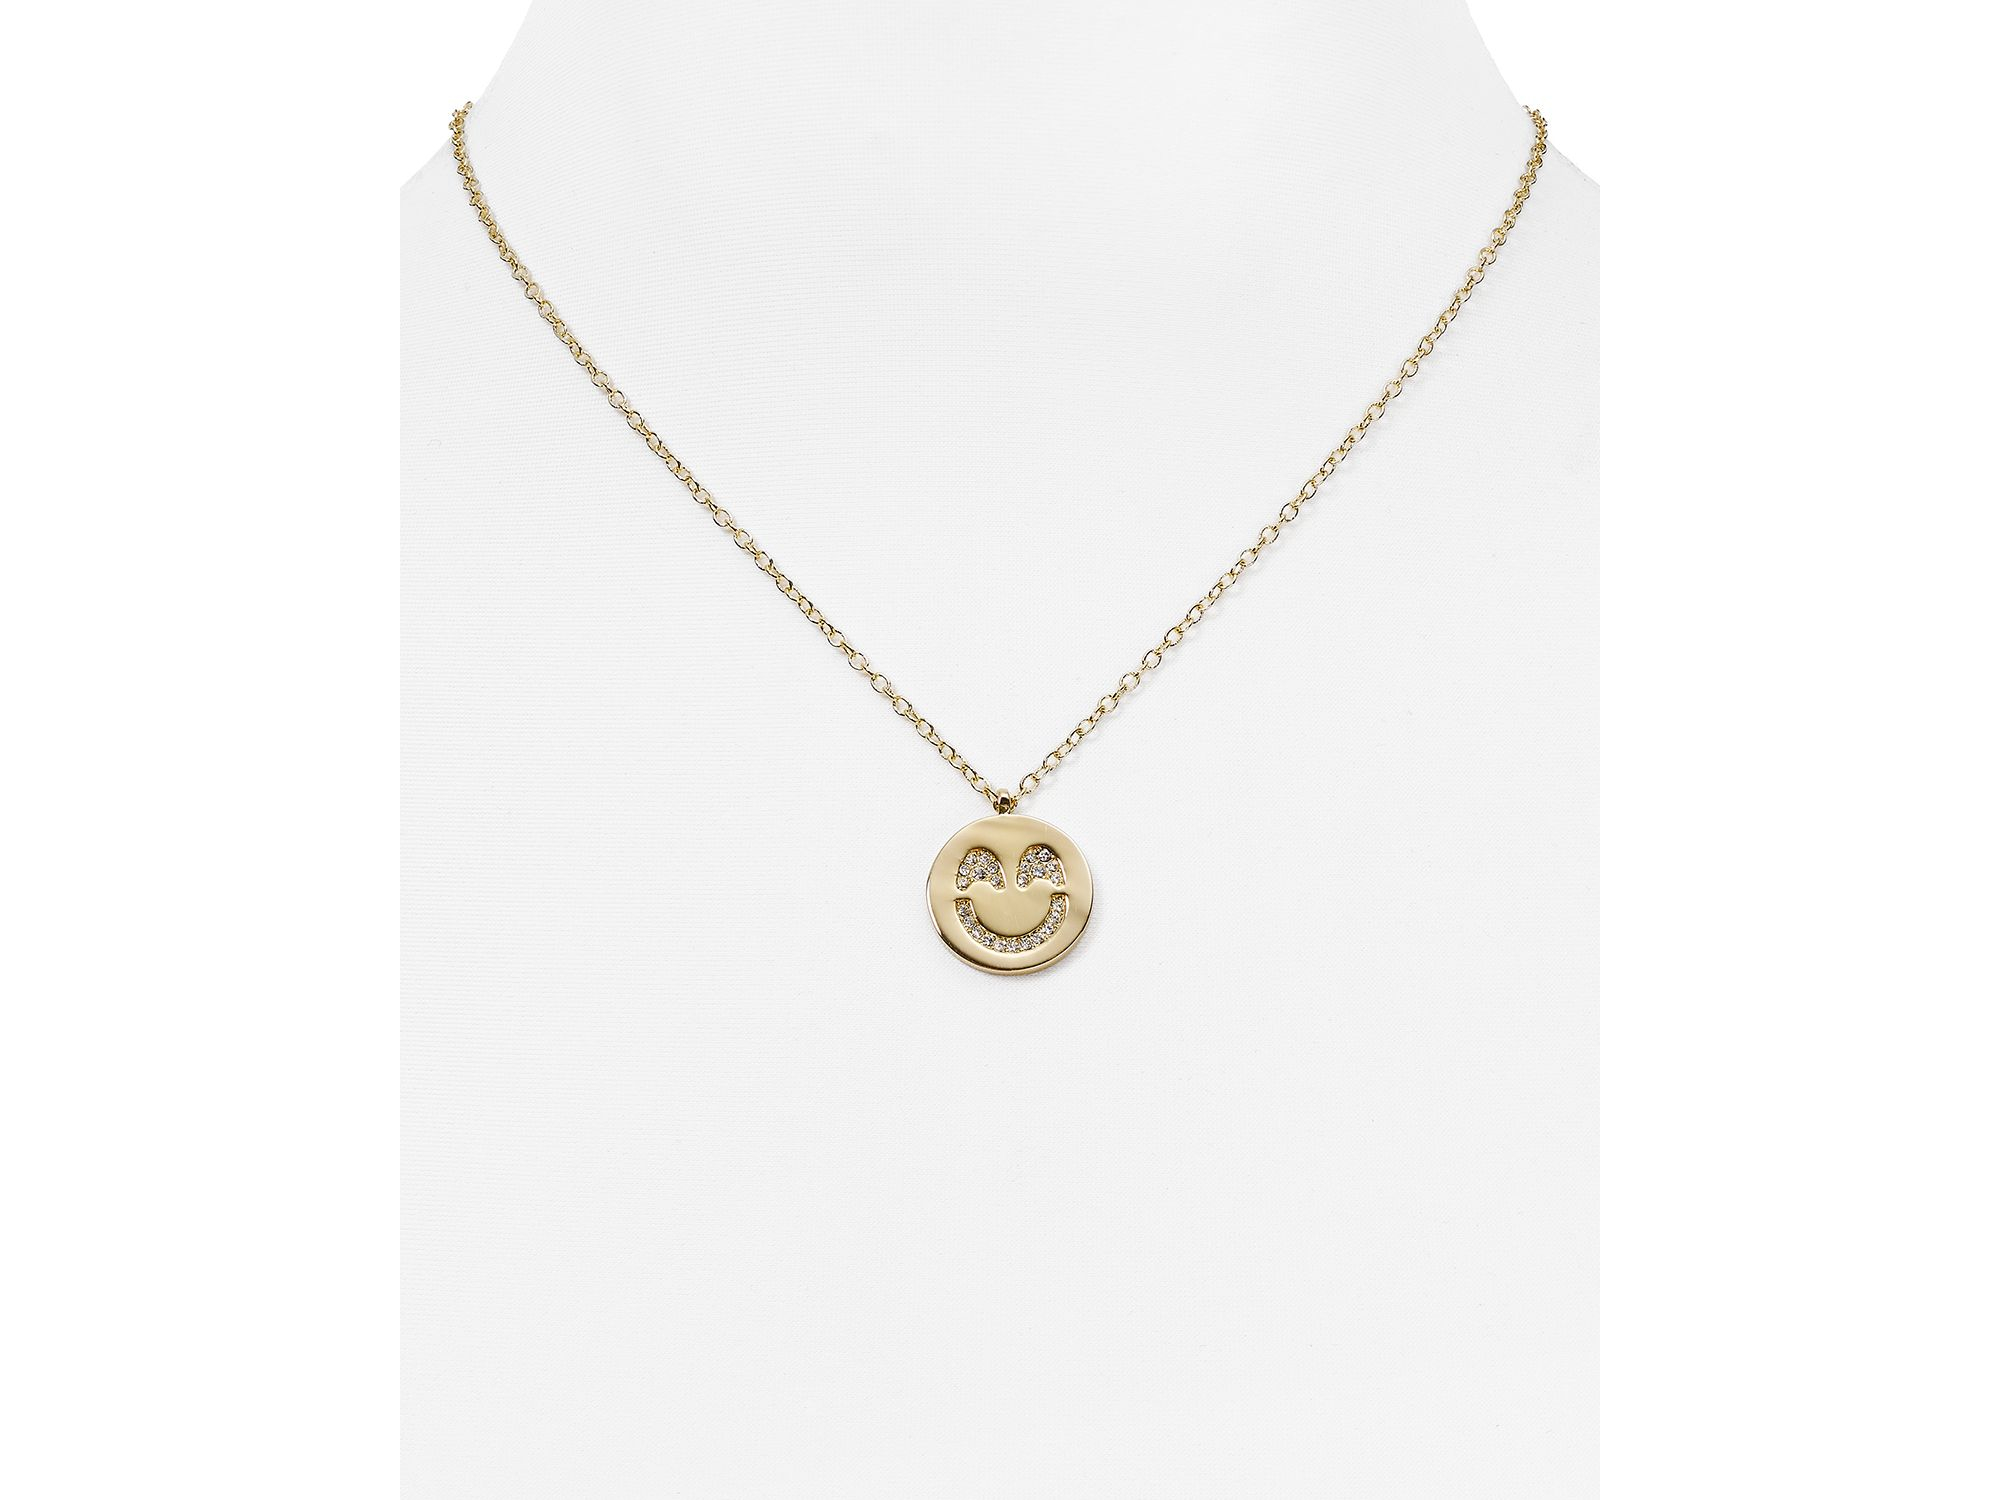 Lyst kate spade new york pave smiley emoji pendant necklace 16 gallery aloadofball Image collections